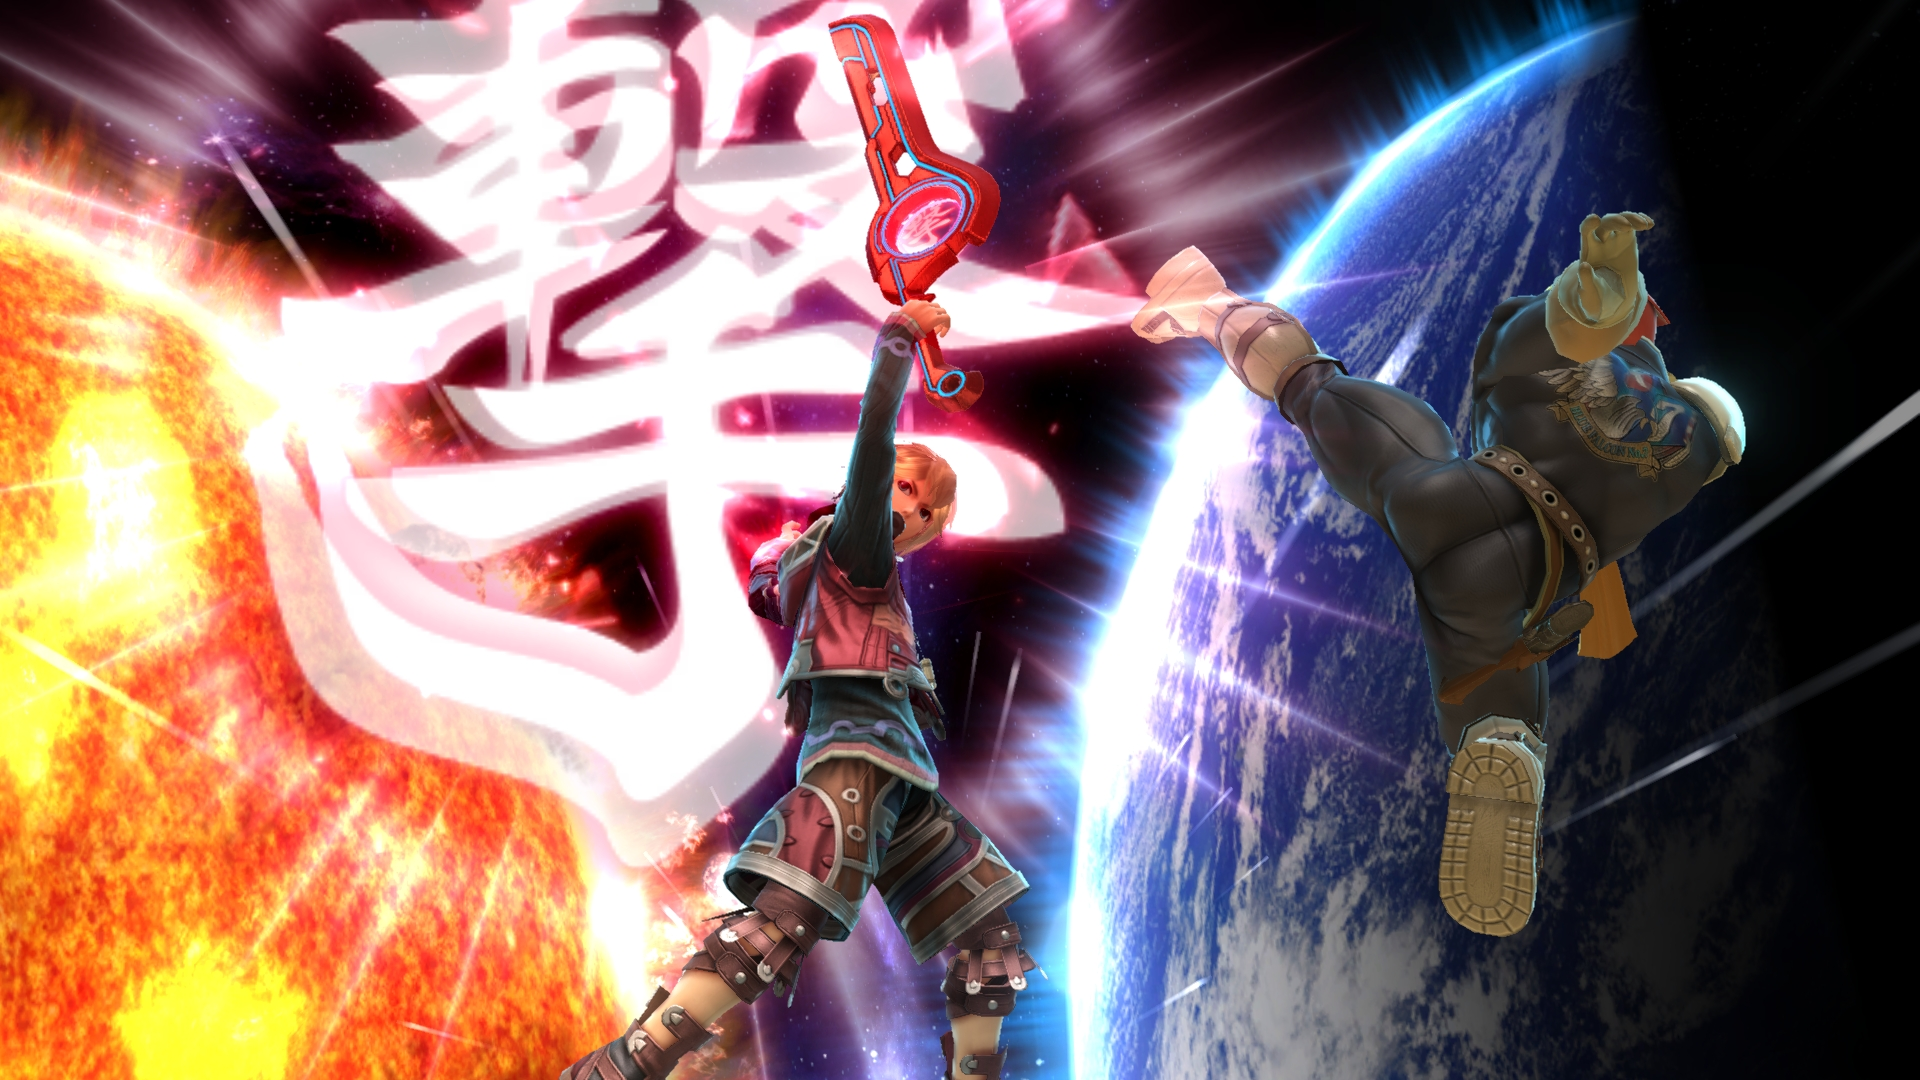 Super-Smash-Bros-for-Wii-U-Shulk-Announcement-Trailer-06 ...